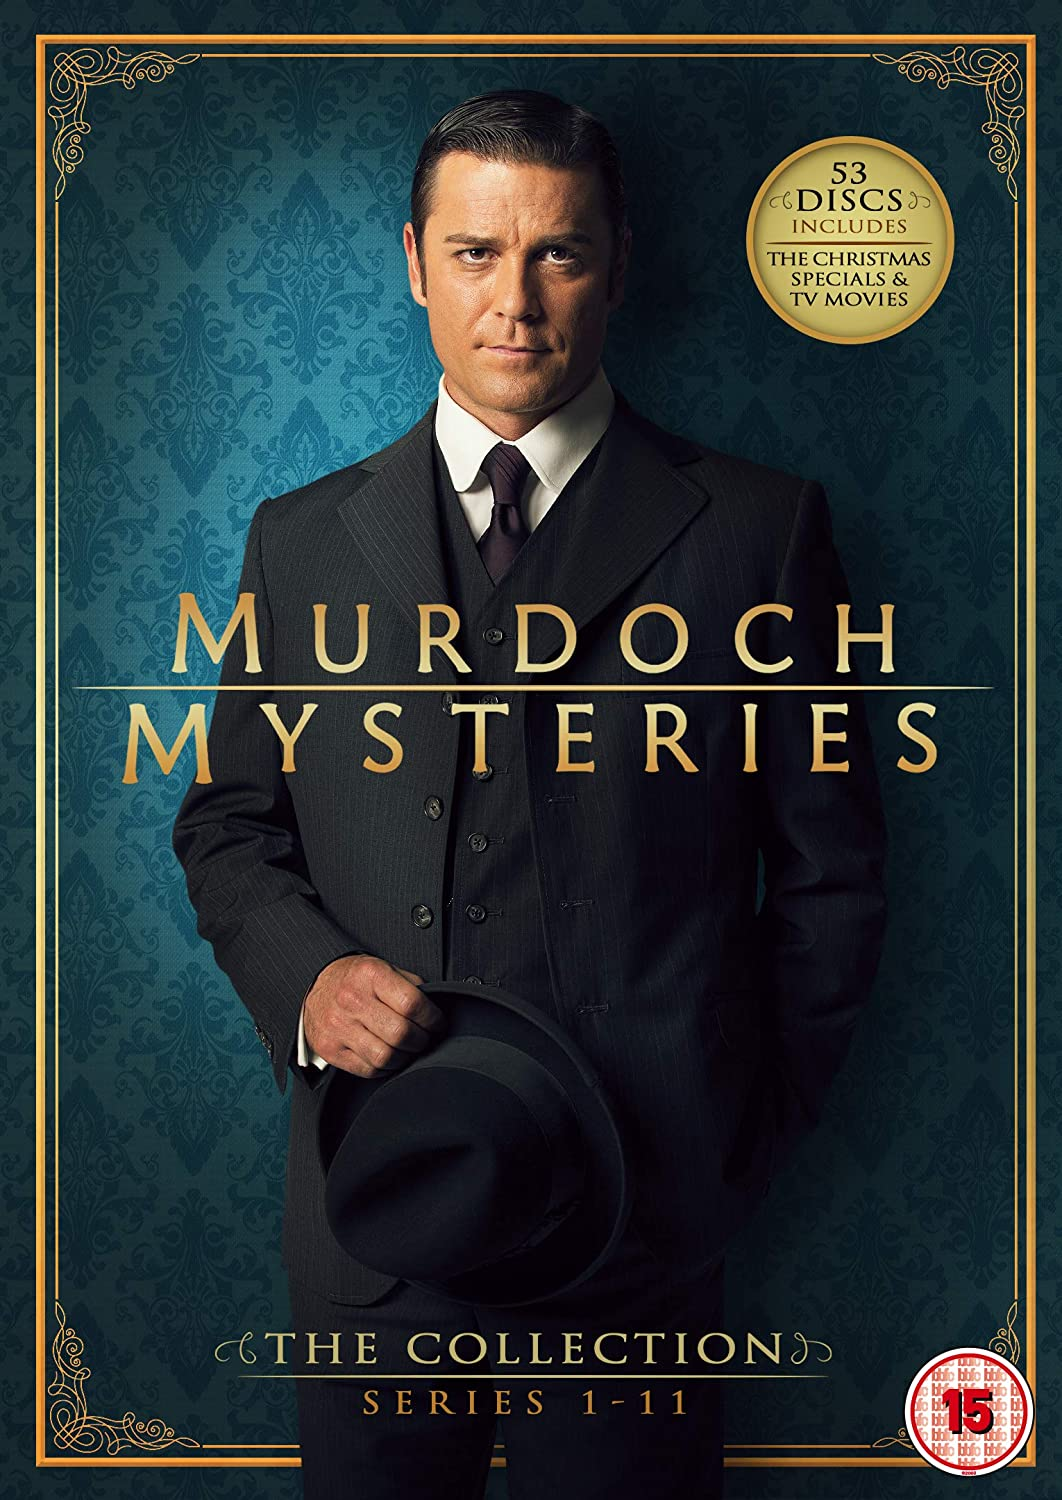 Murdoch Mysteries: The Collection (Series 1-11 + Specials)